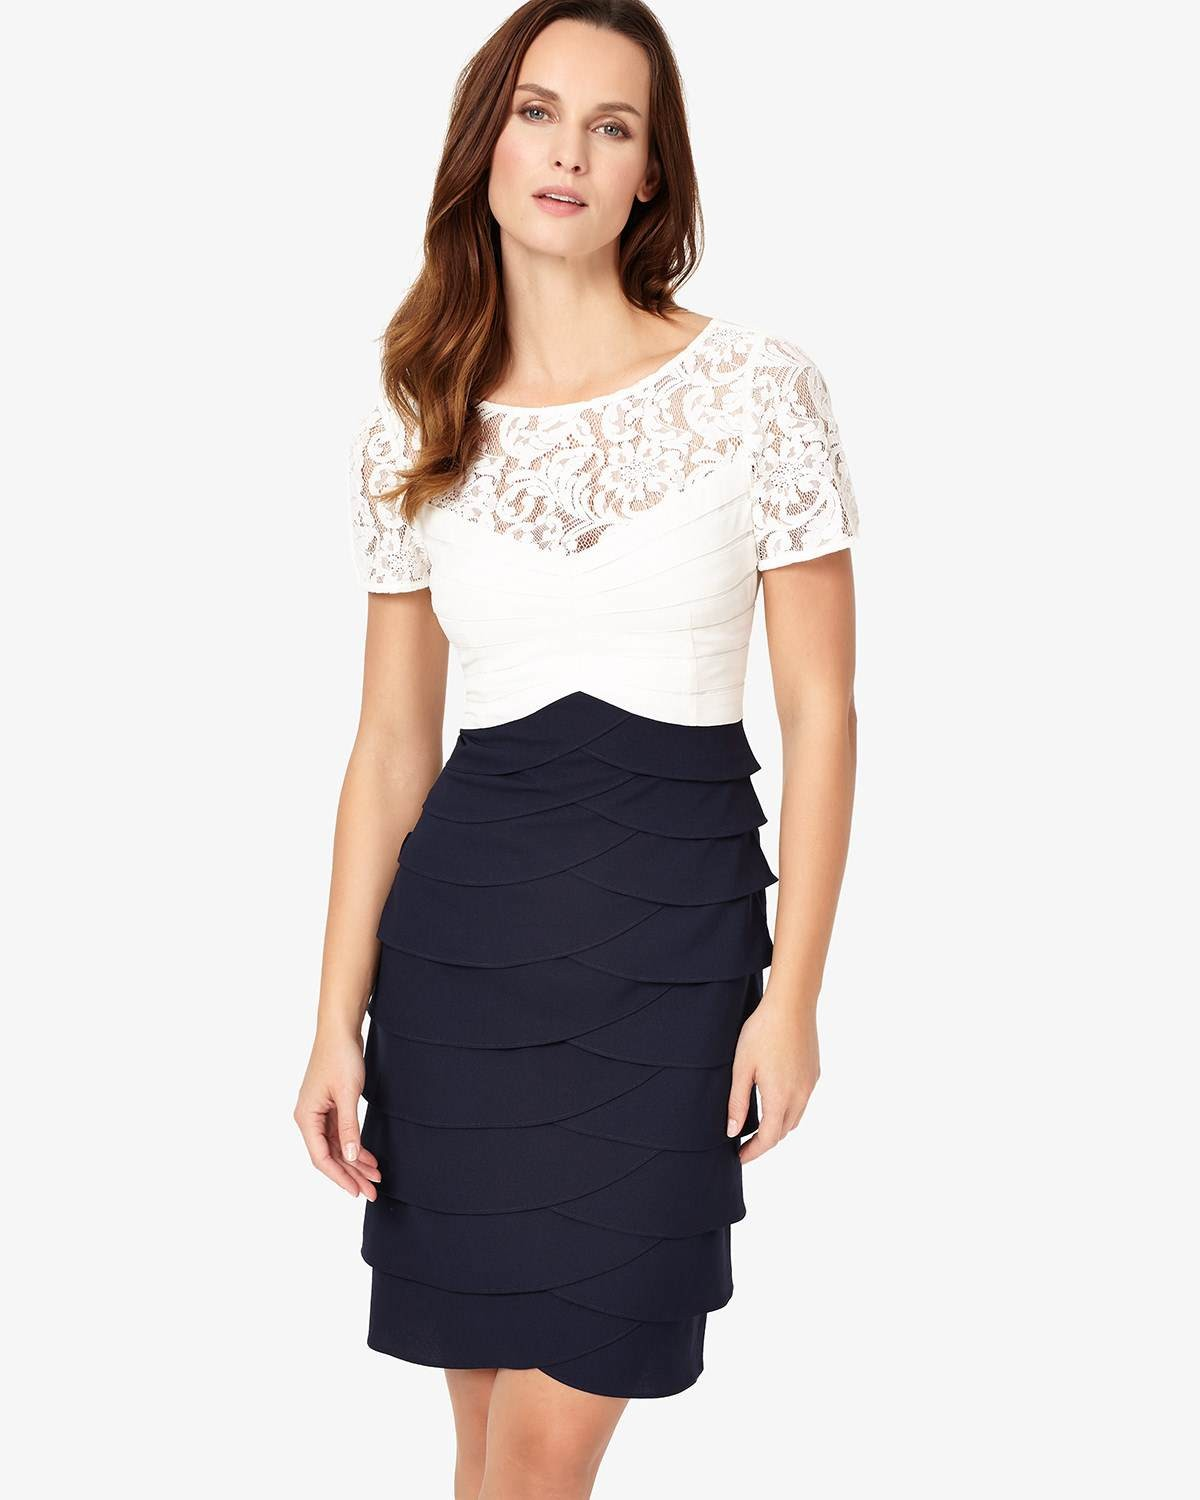 821af42ad8deb Phase Eight Navy Ivory Dresses Evie Lace Dress